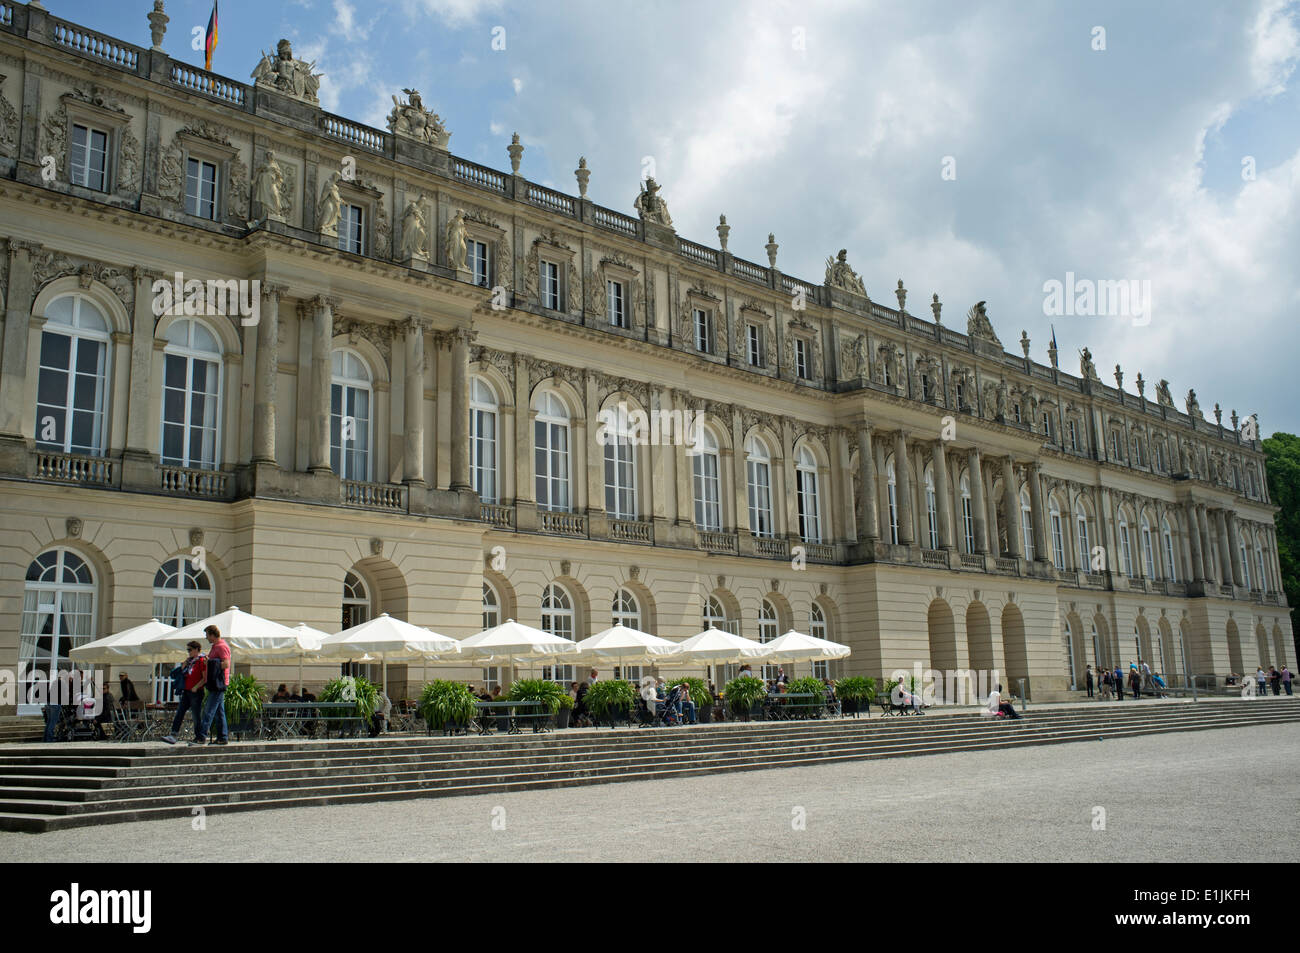 Herrenchiemsee royal palace, Herreninsel, Chiemsee, Bavaria, Germany. - Stock Image